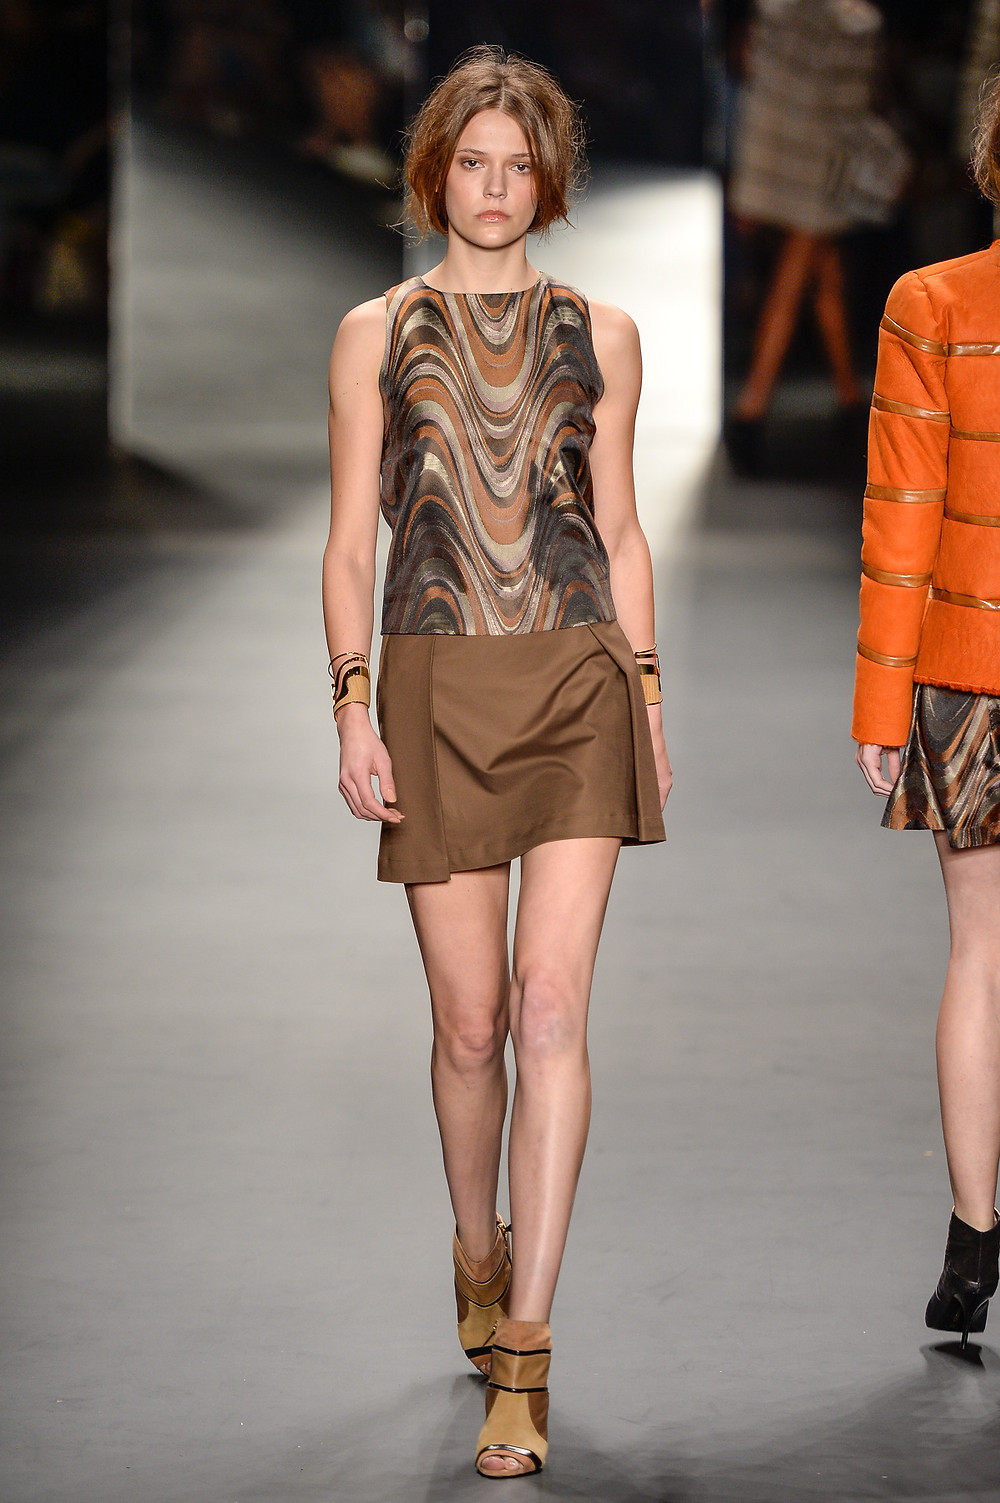 lilly-sarti-spfw-inverno2015-22.jpg